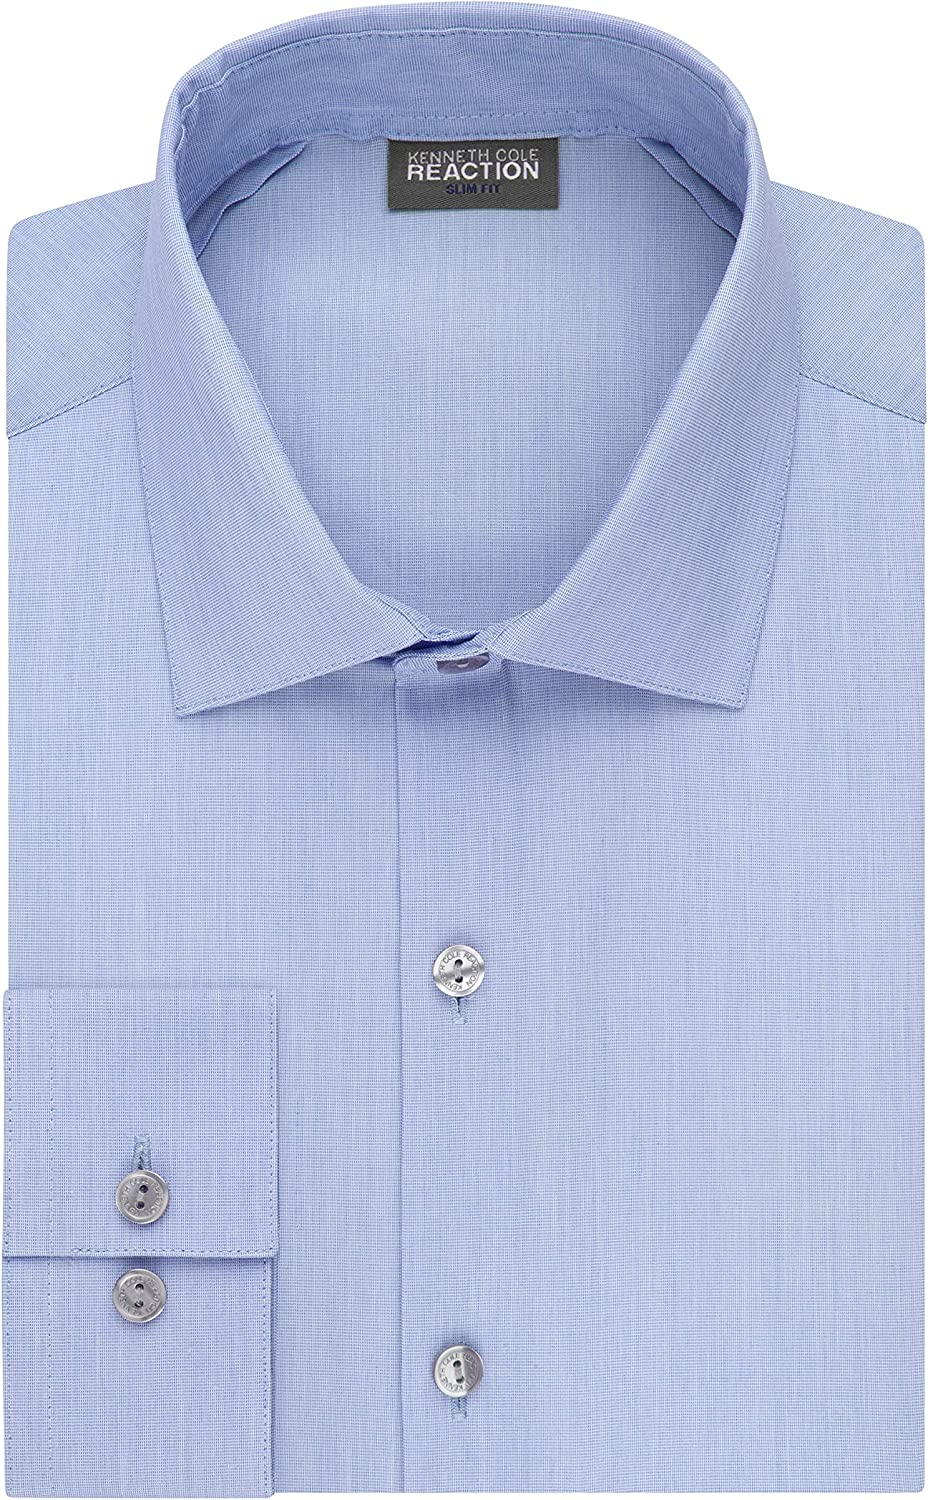 Kenneth Cole REACTION Mens Dress Shirt Slim Fit Technicole Stretch Solid